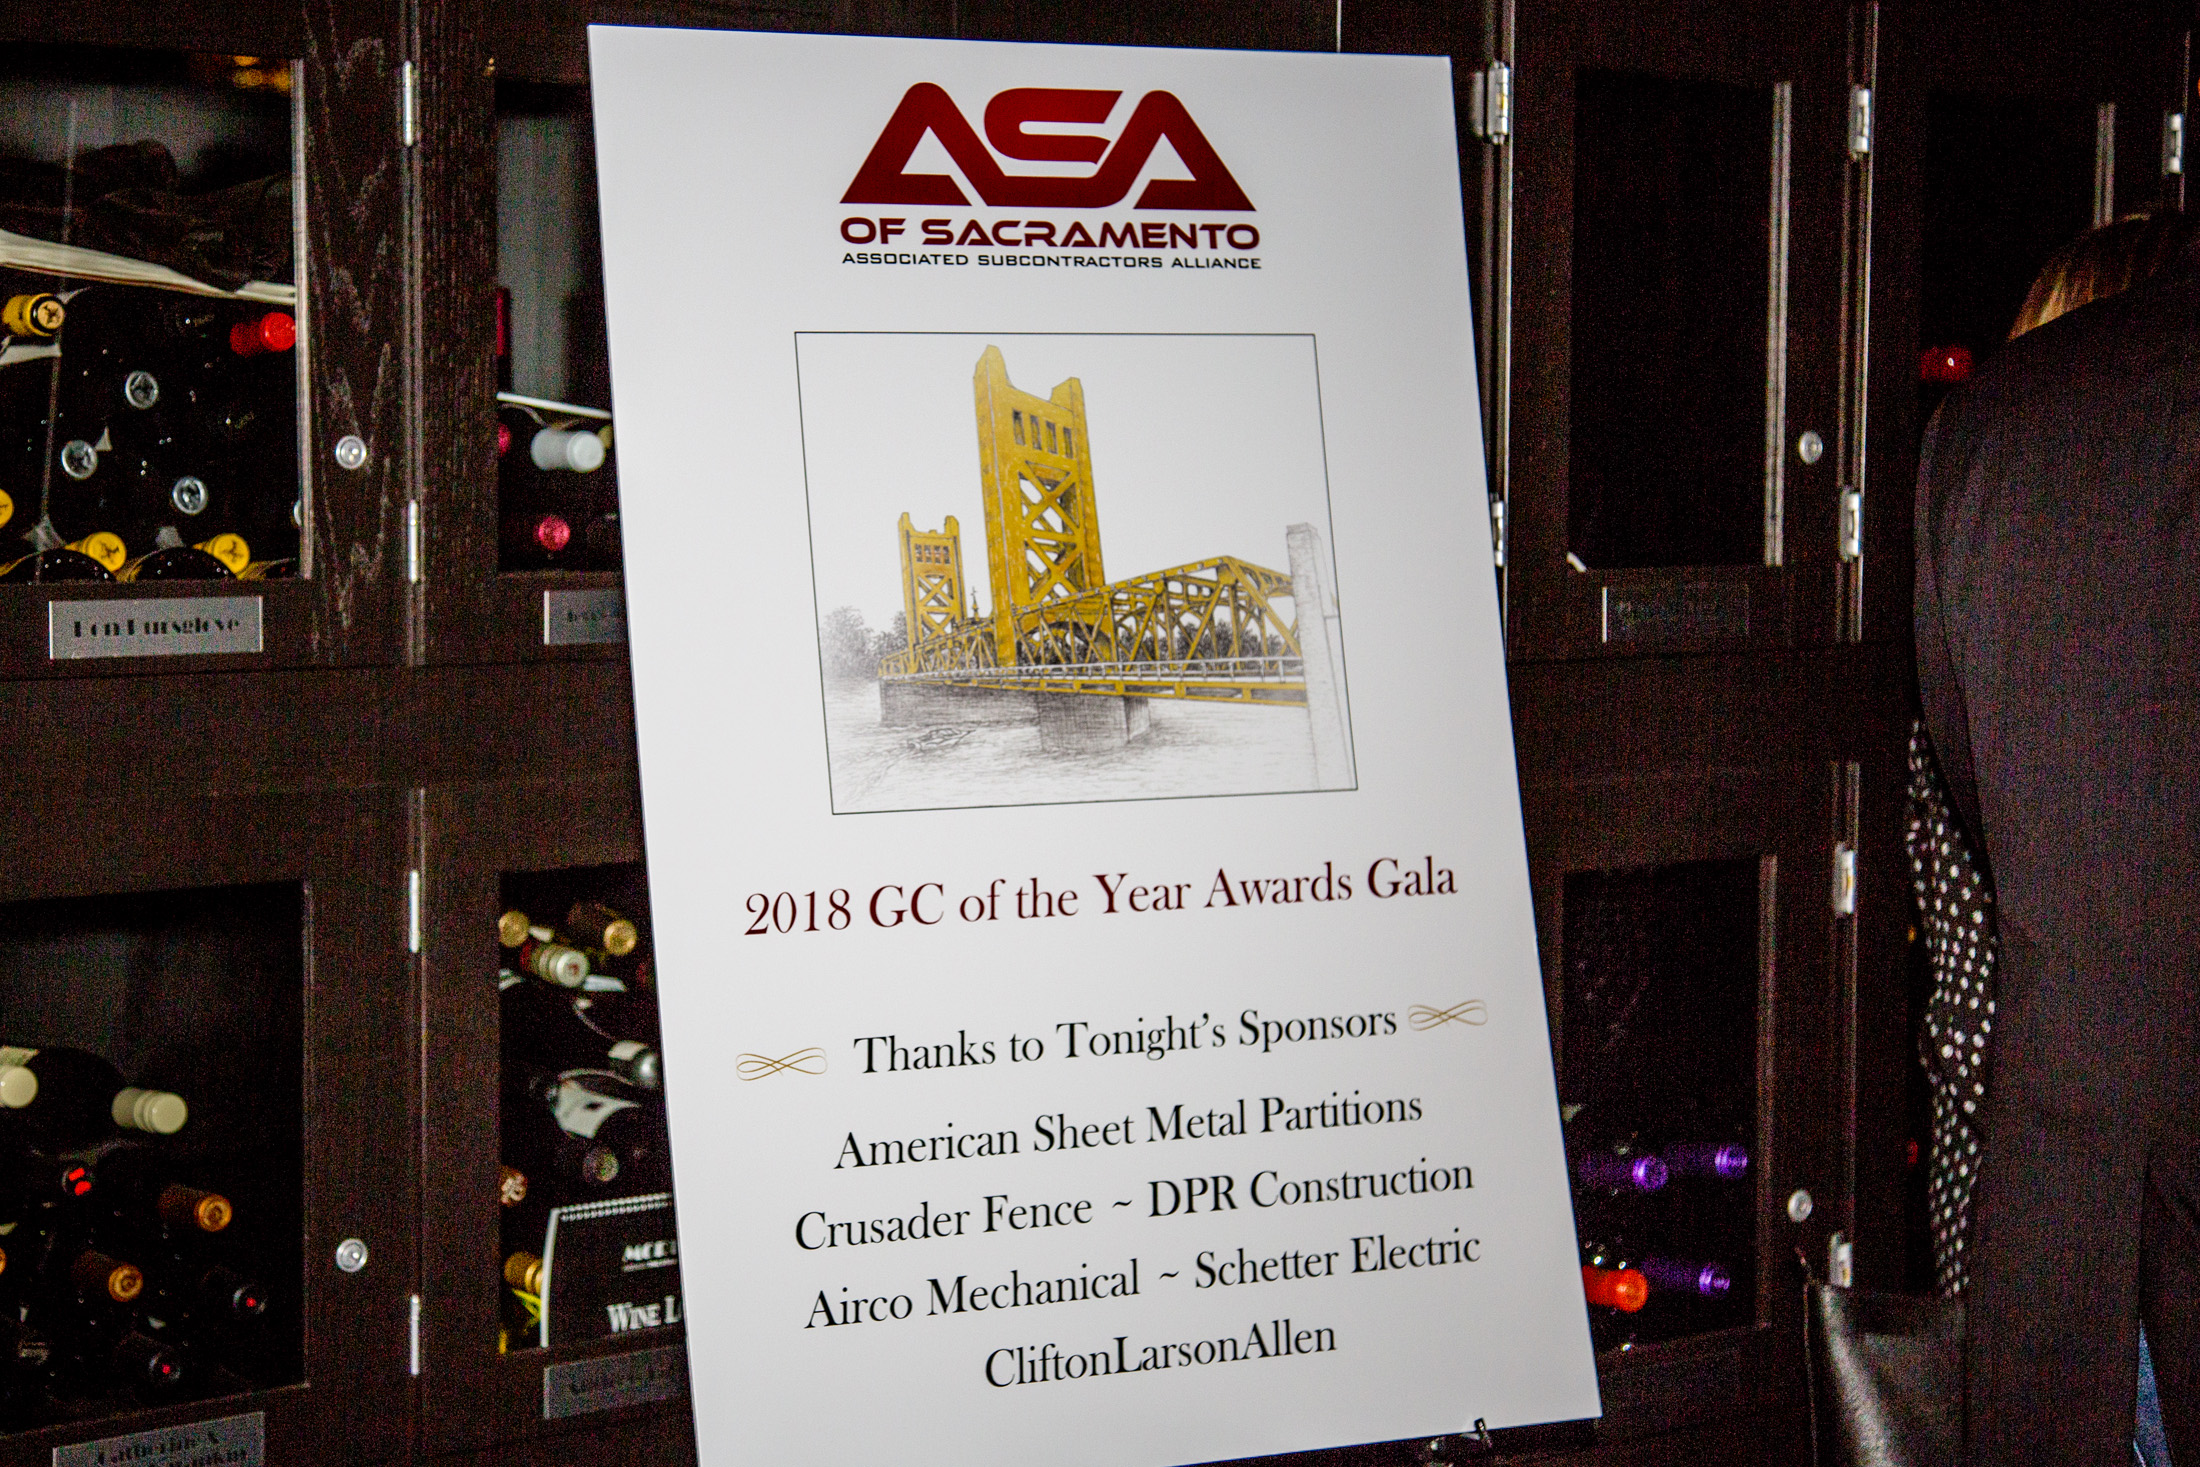 01_ASA GC of the Year 2018